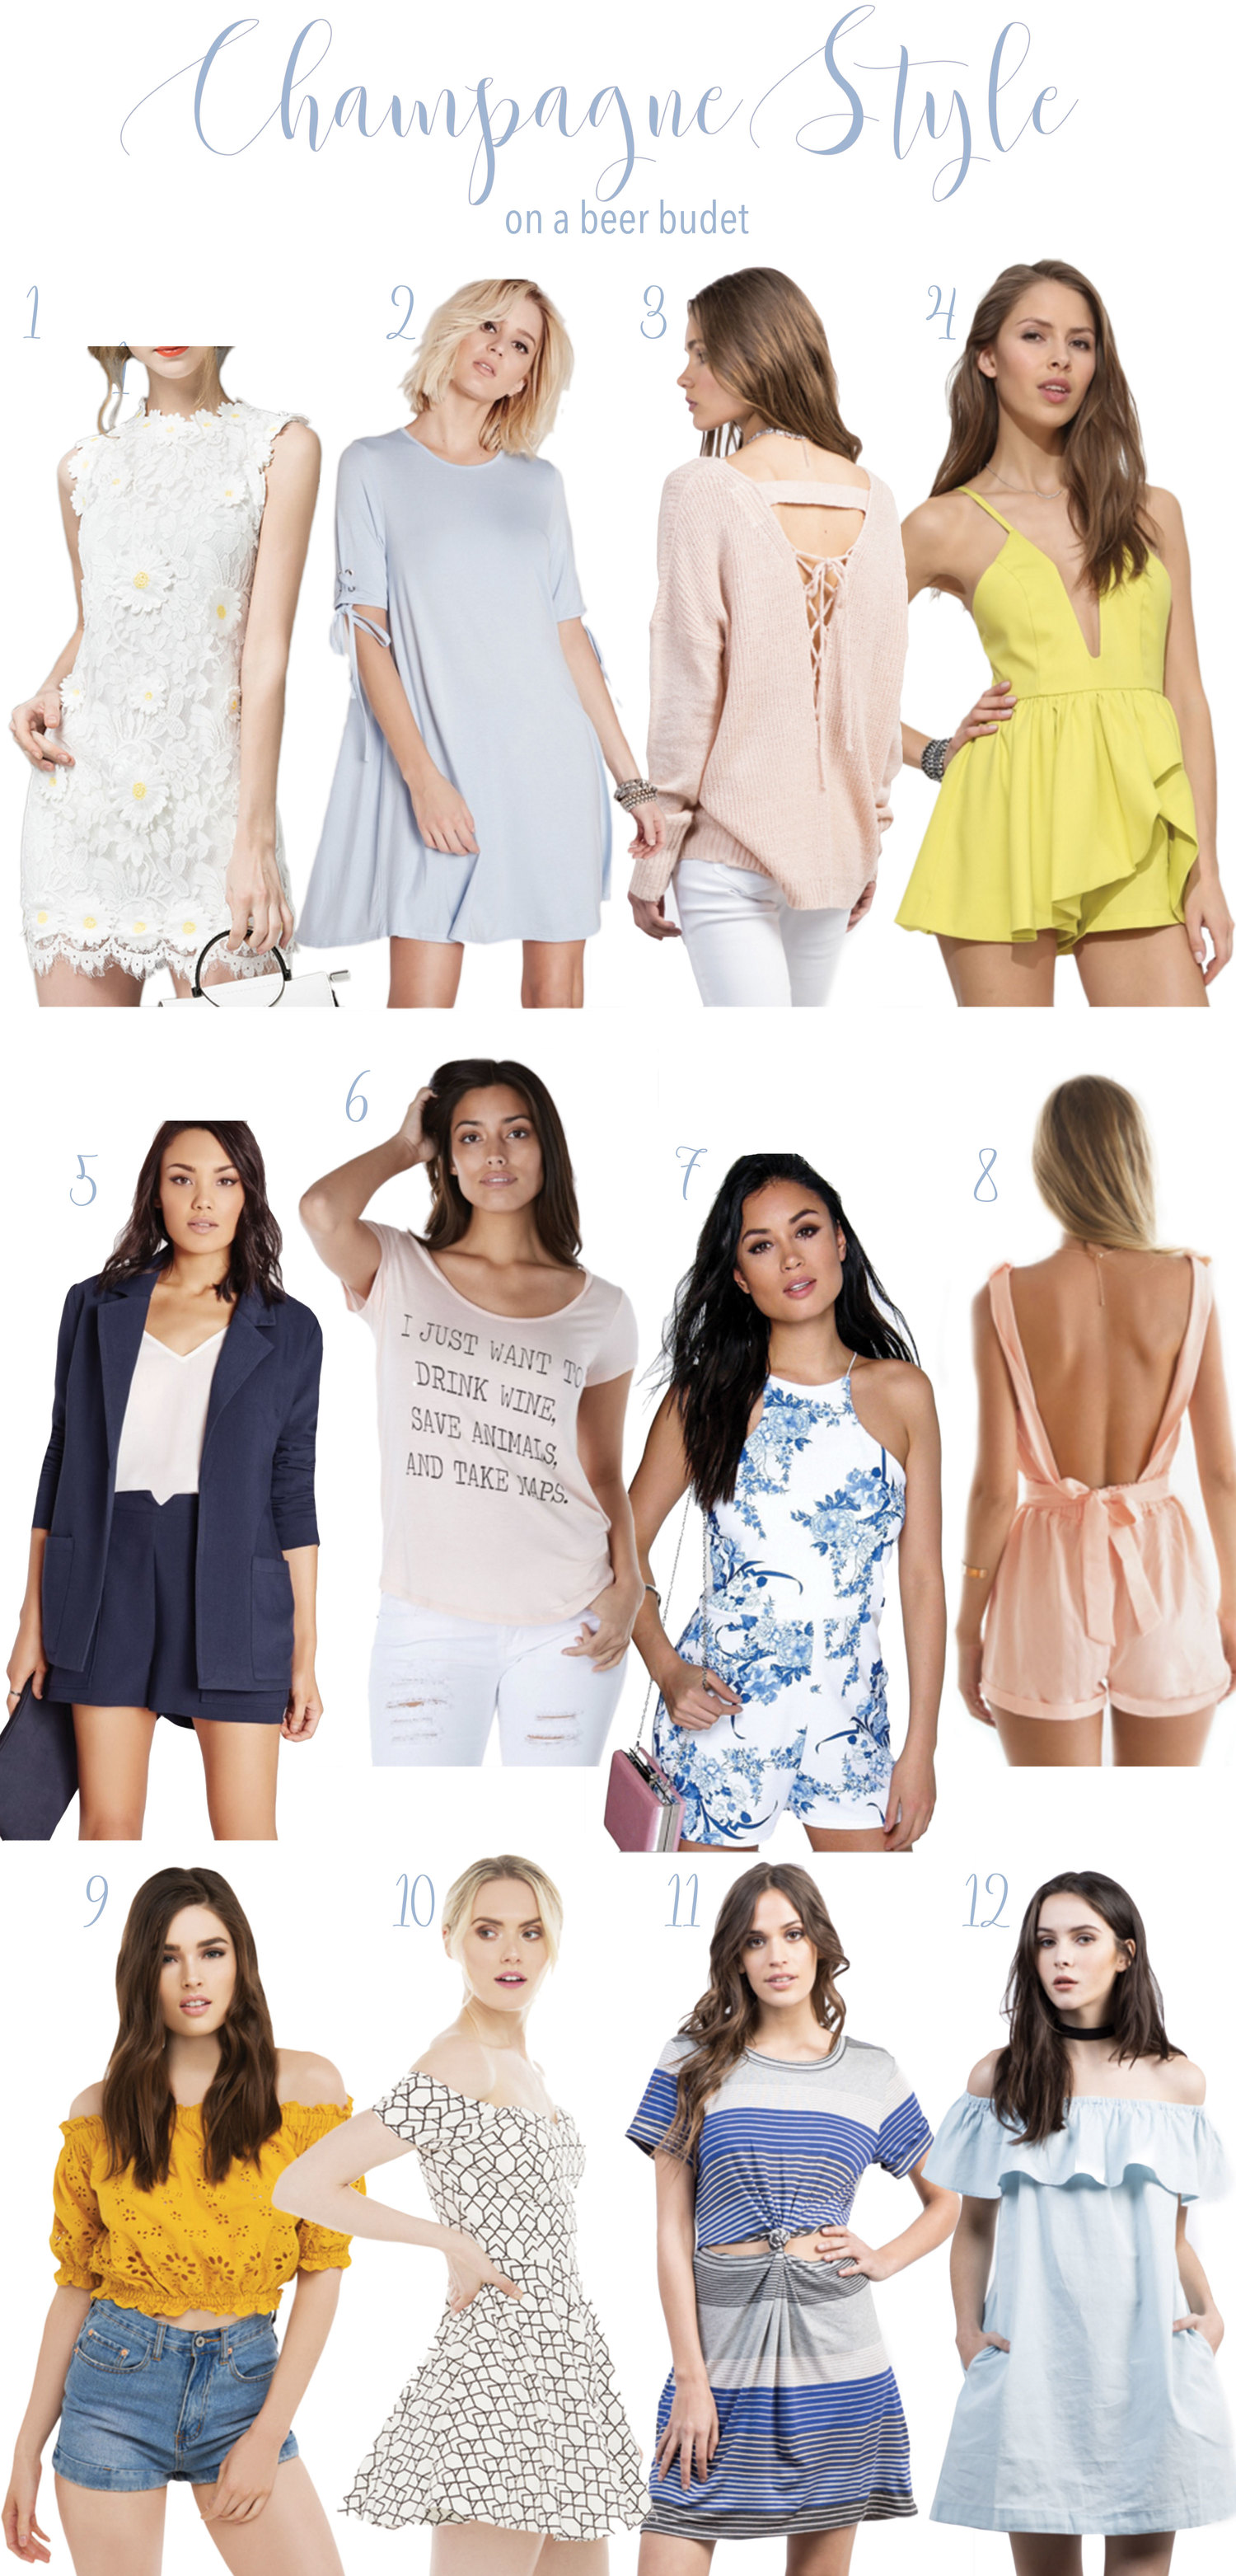 809e9edd2e70c8 9 AFFORDABLE CLOTHING SITES YOU DIDN T KNOW ABOUT — Me and Mr. Jones